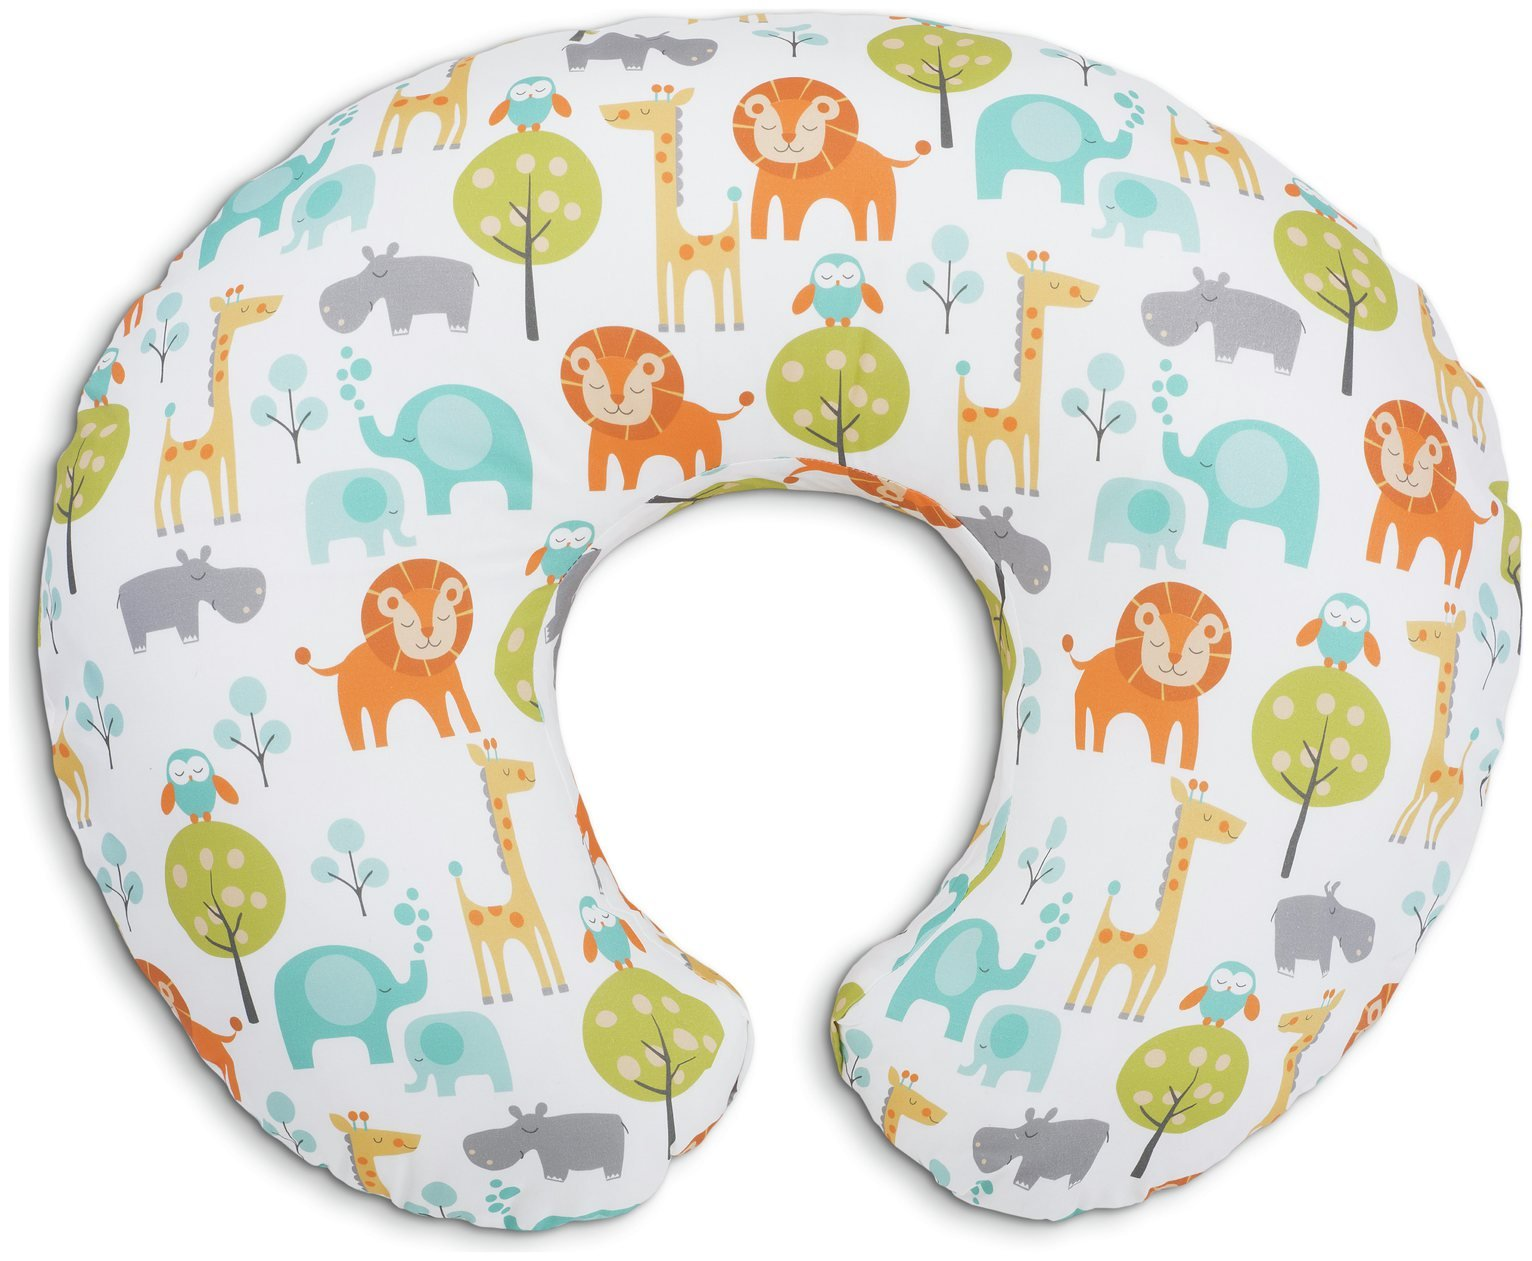 Image of Chicco Boppy Breastfeeding Pillow - Peaceful Jungle